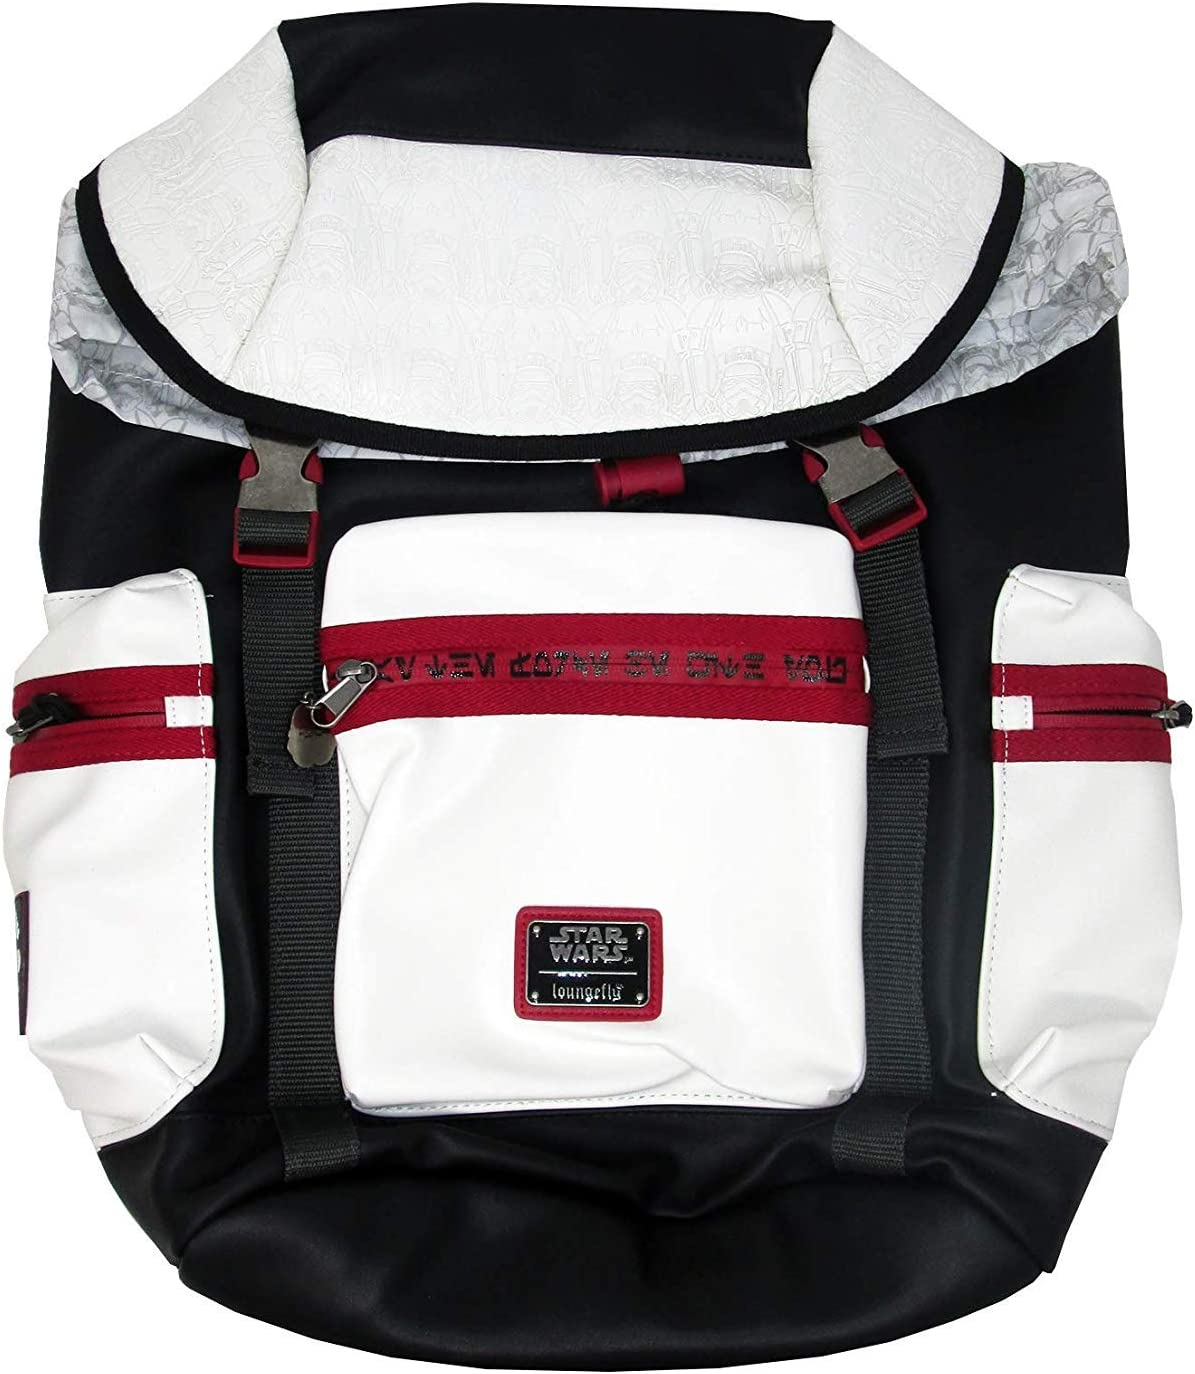 Loungefly x Star Wars White Stormtrooper Backpack (One Size, Multicolored)